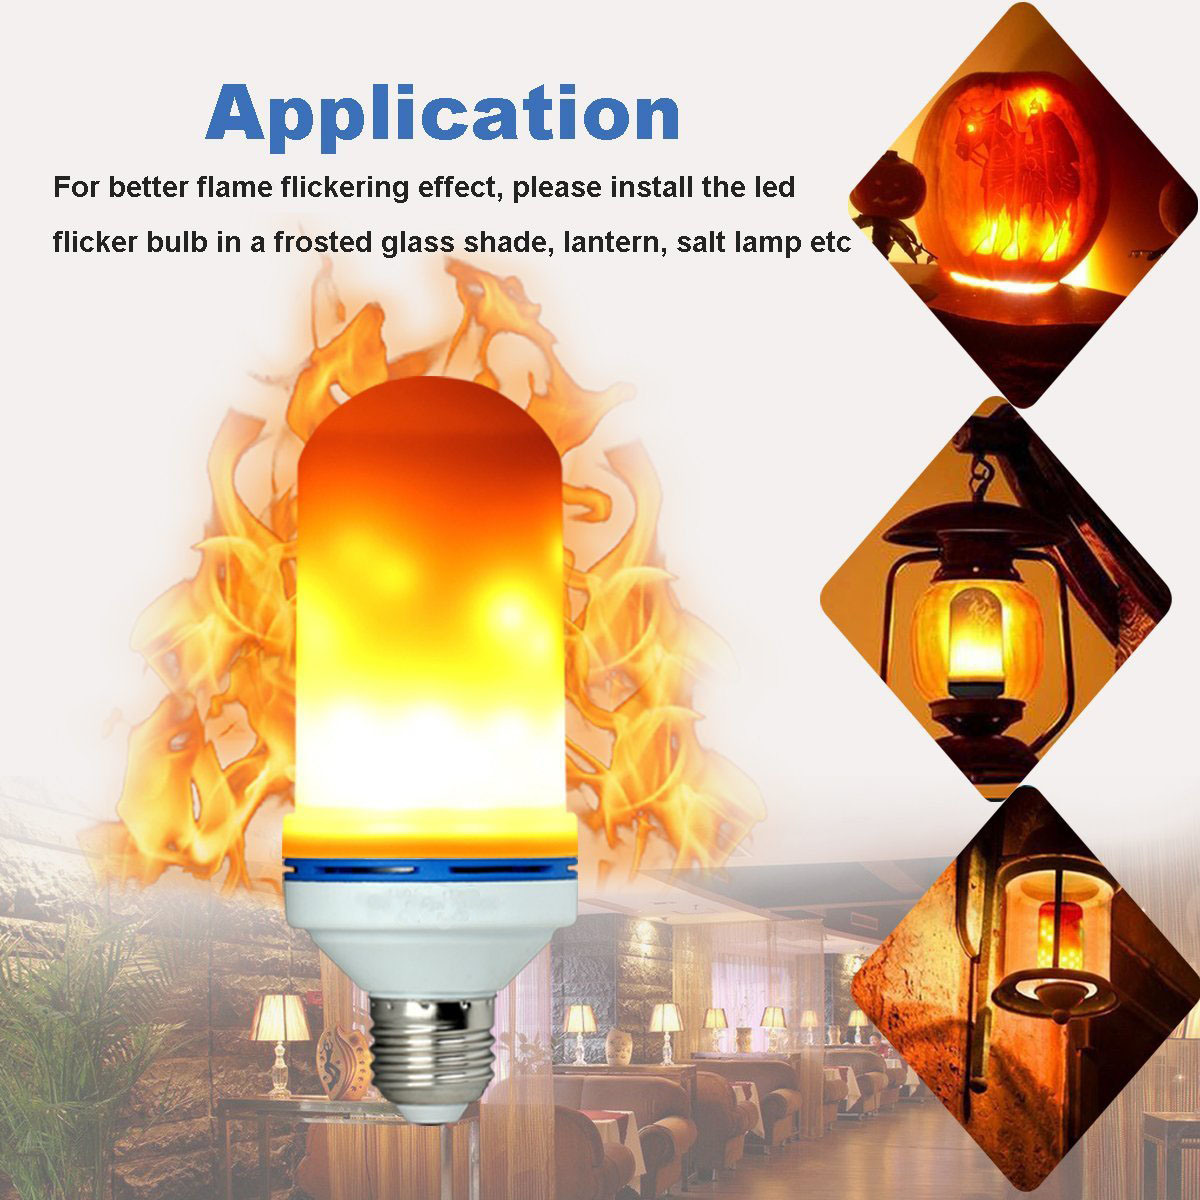 Flame Led Lamp E27 Hot Item Led Flame Effect Light Bulb E27 Led Flickering Flame Bulb Atmosphere Lighting Bulb